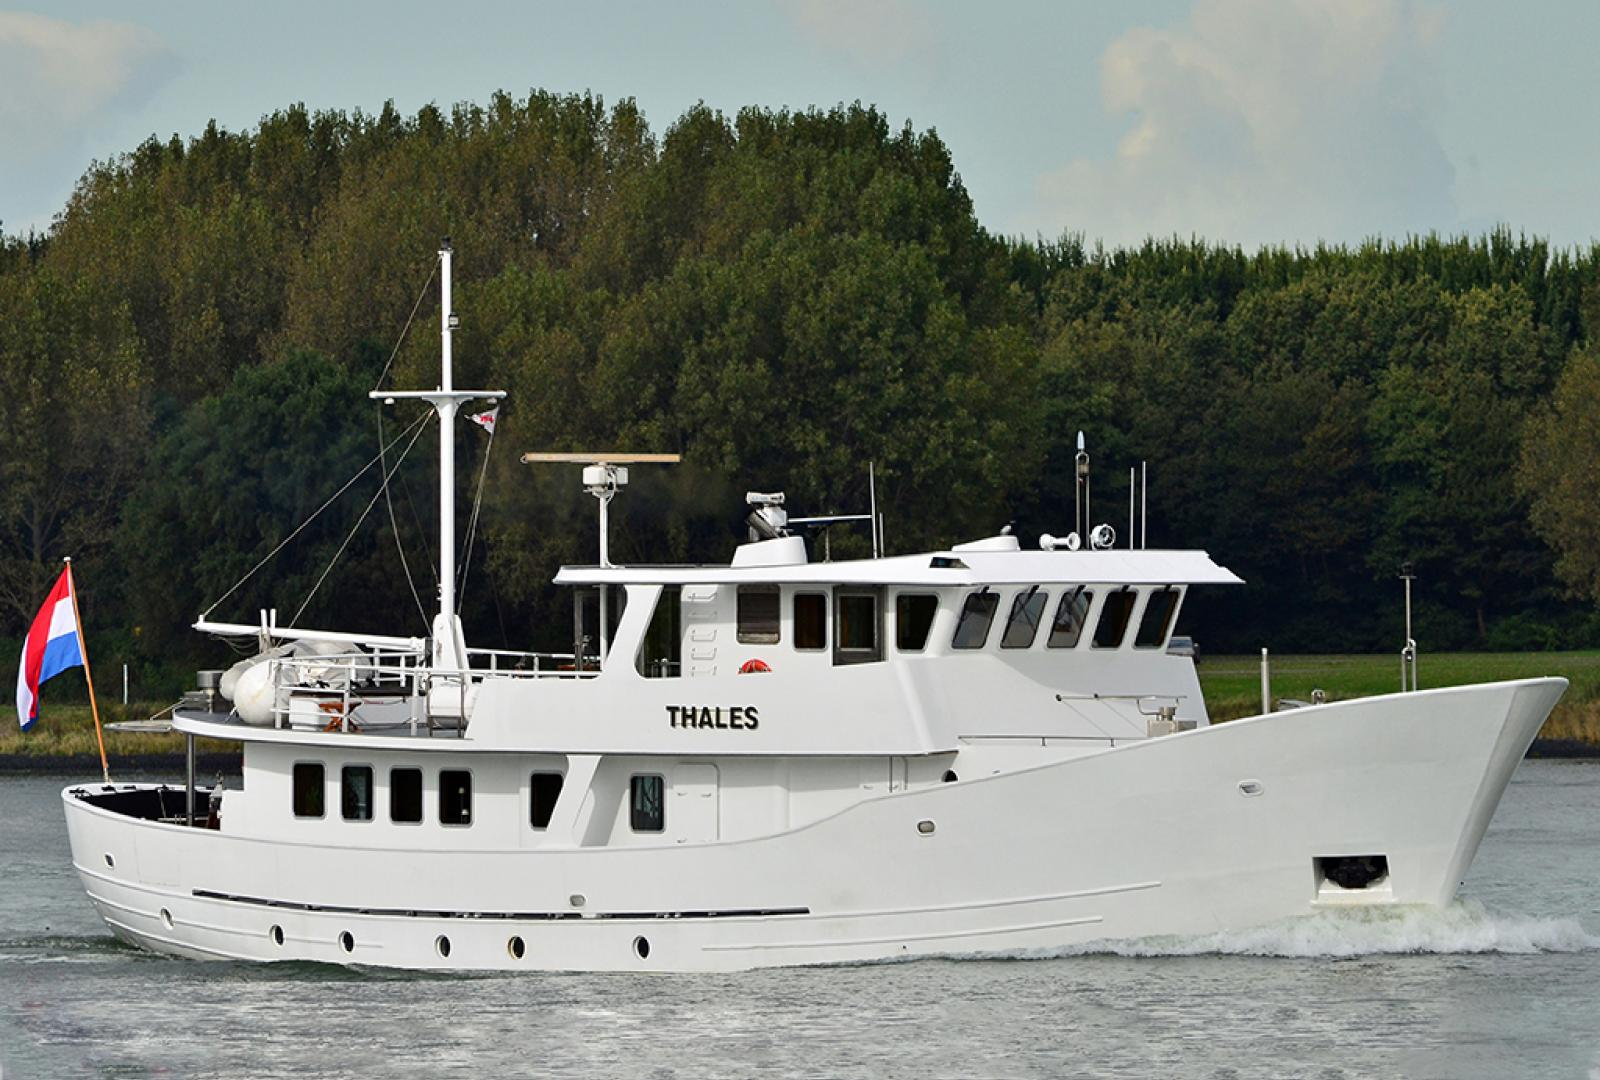 Thales, yacht for sale, dutch built yacht, price reduction, steel trawler, charter yacht, day charter,Yacht for sale, dutch built yacht